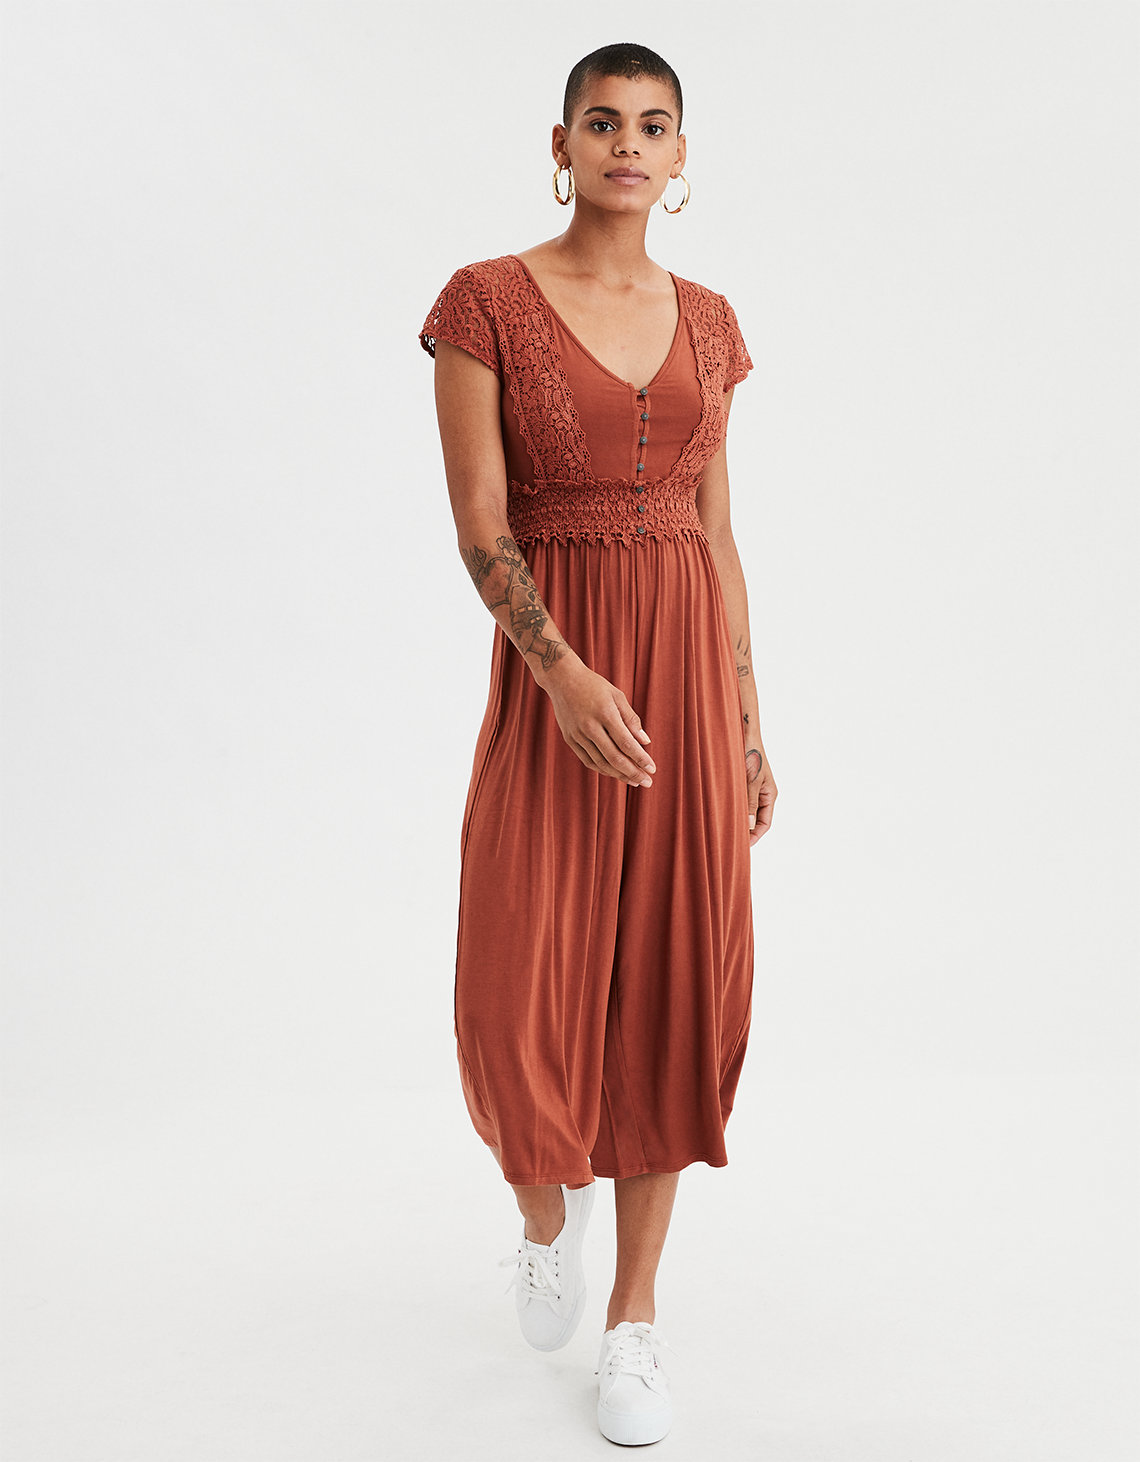 4473331eeb11 AE Knit Lace Culotte Jumpsuit. Placeholder image. Product Image